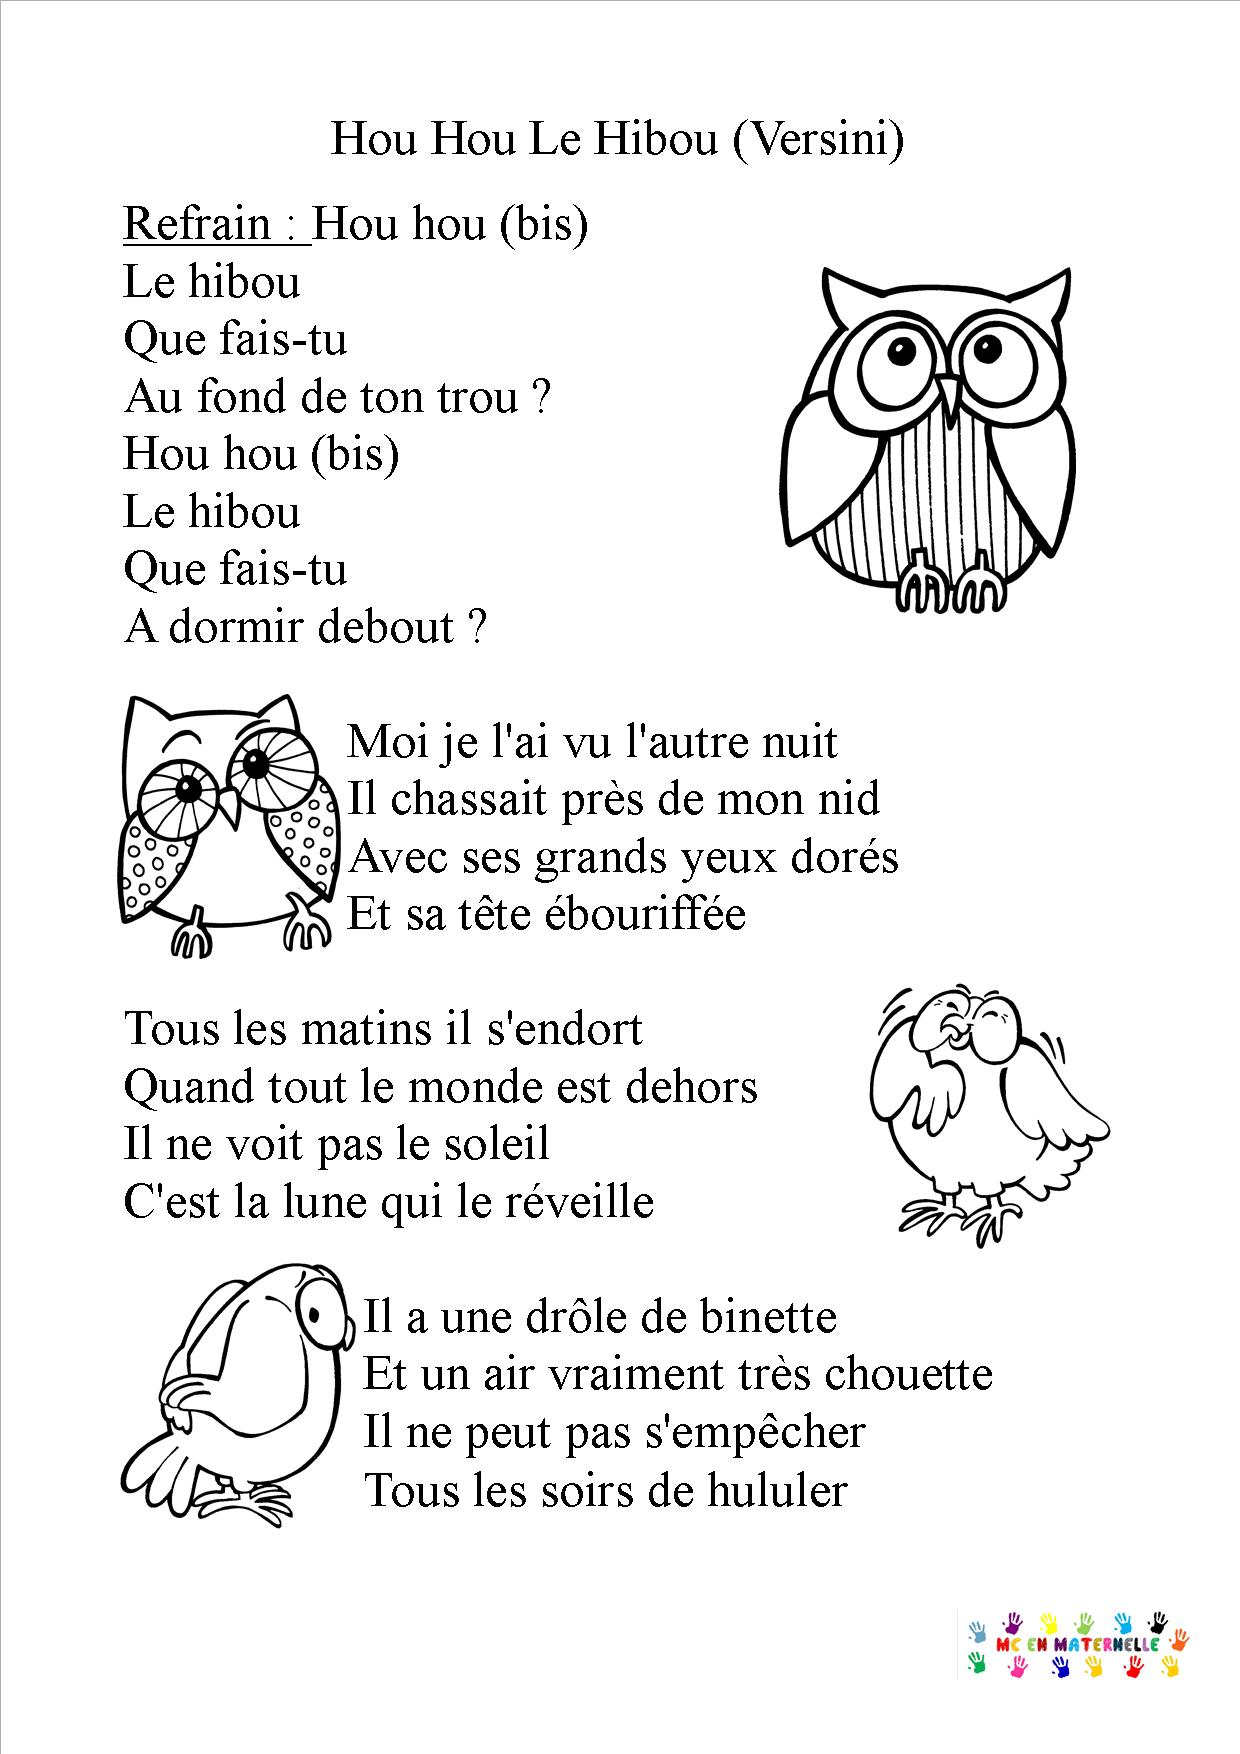 hou hou le hibou mc en maternelle. Black Bedroom Furniture Sets. Home Design Ideas